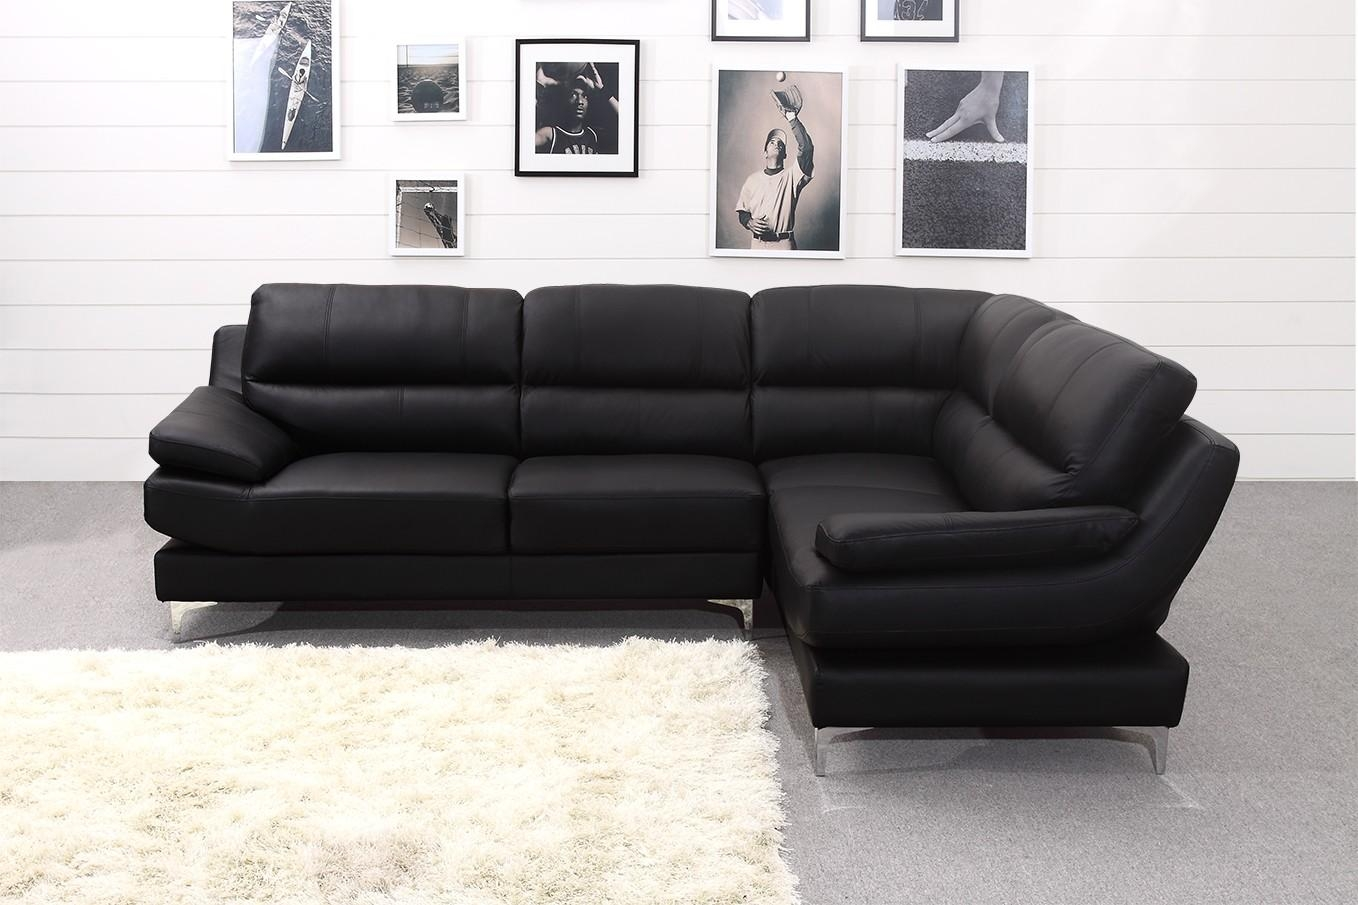 Leather Corner Sofa | Tehranmix Decoration Intended For Cheap Corner Sofa (View 9 of 20)